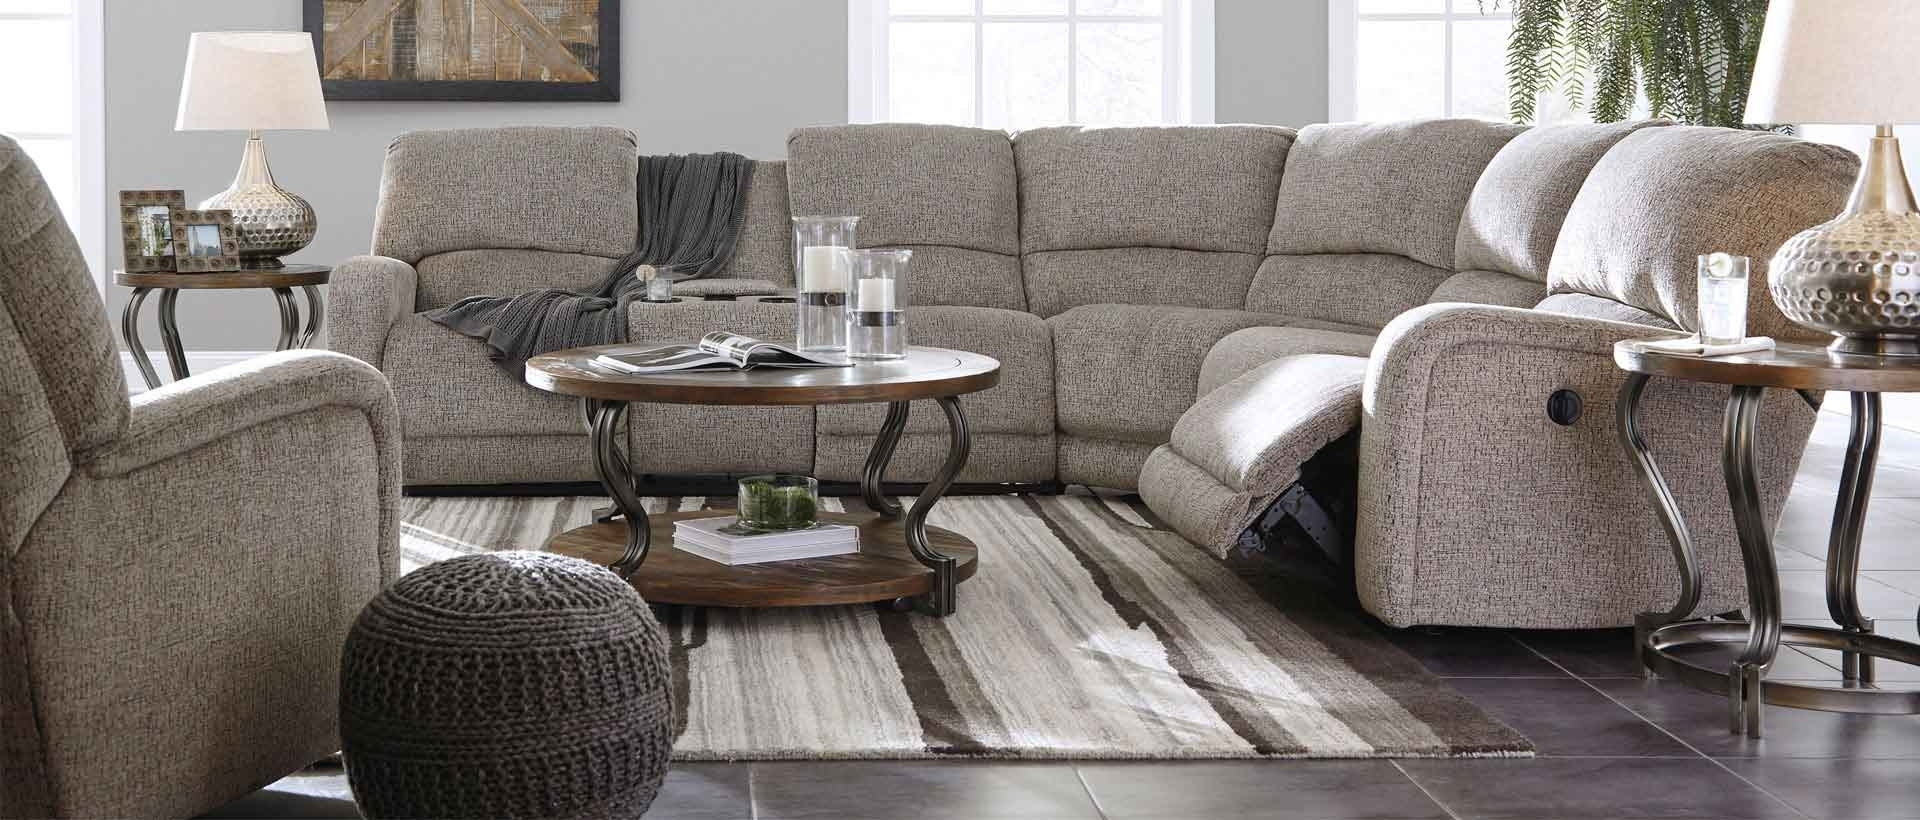 Famous Furniture Creations Near Me Del Sol Furniture Phoenix Az Furniture Pertaining To Phoenix Arizona Sectional Sofas (View 17 of 20)